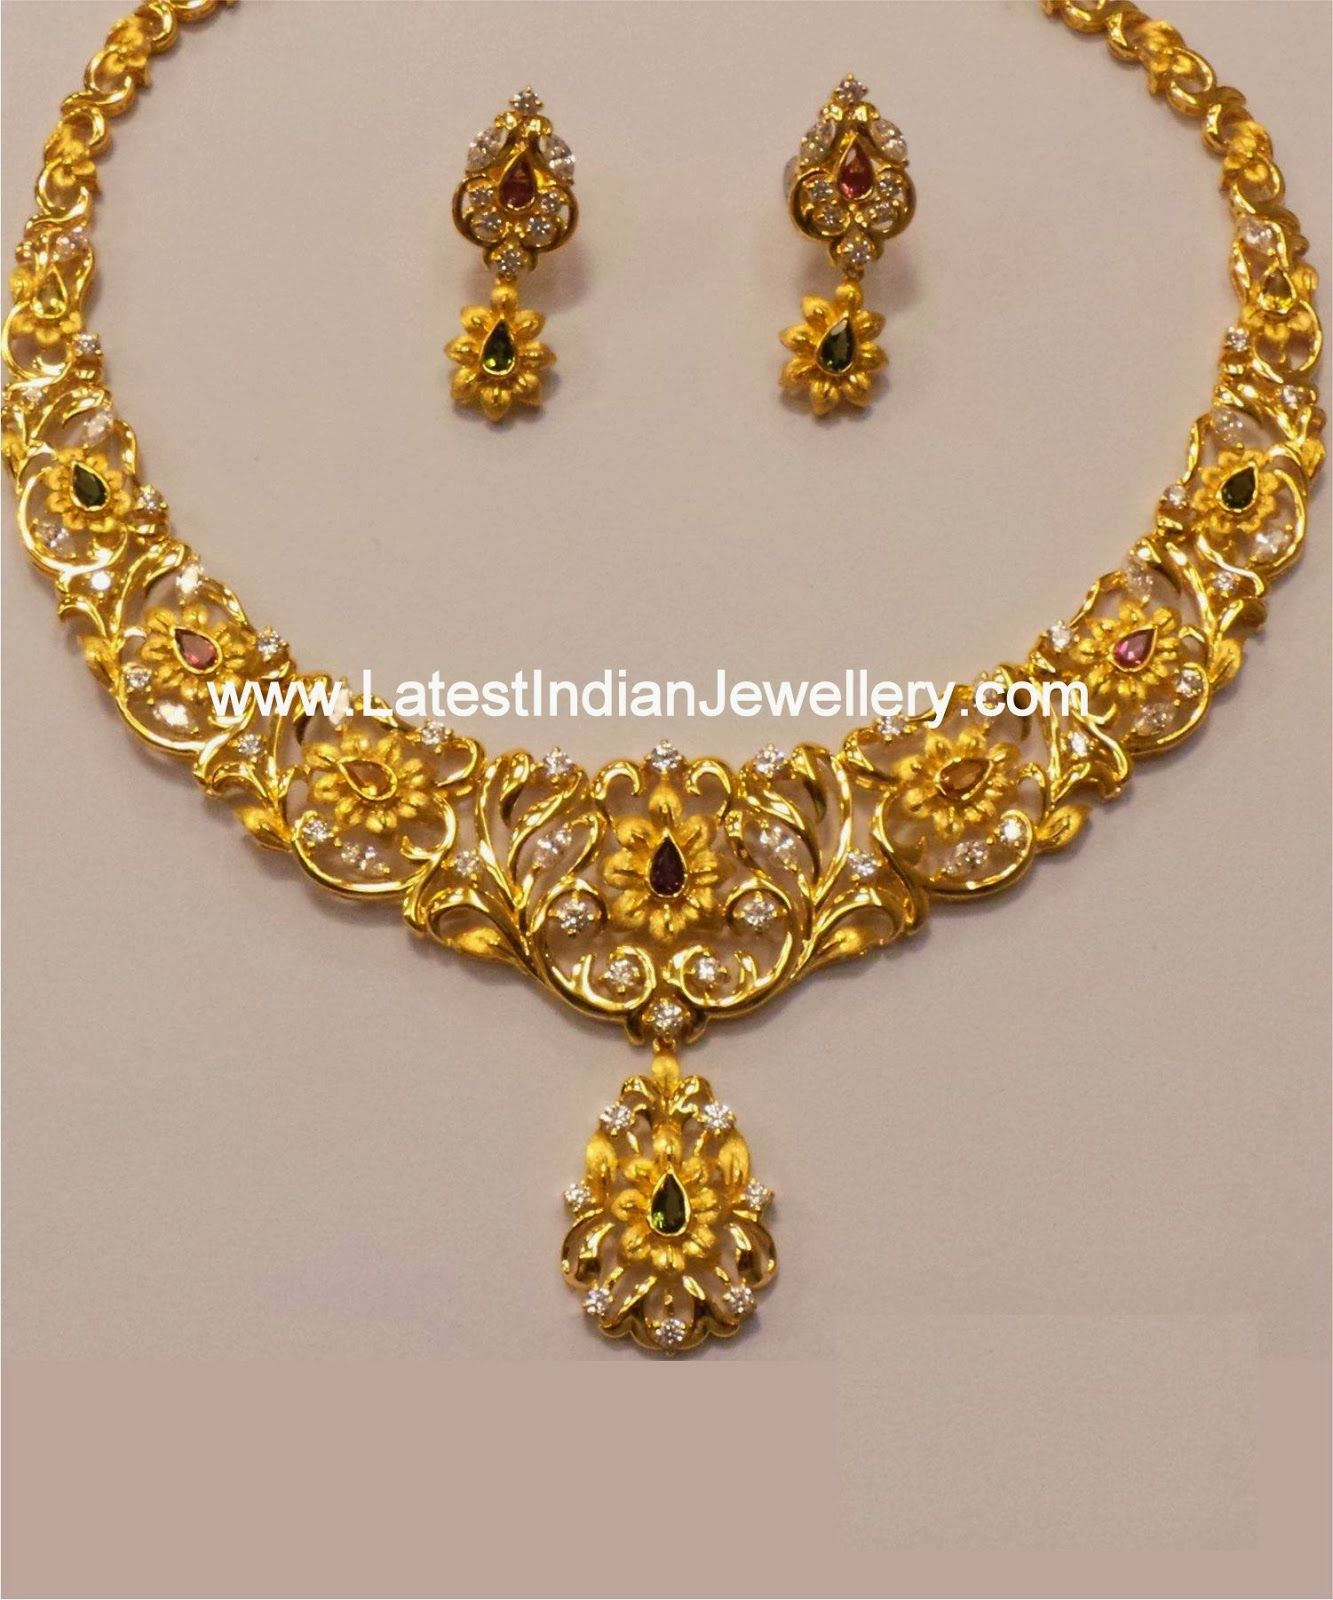 indian designs jewellery balls chain pendants pendant gold chains antique with